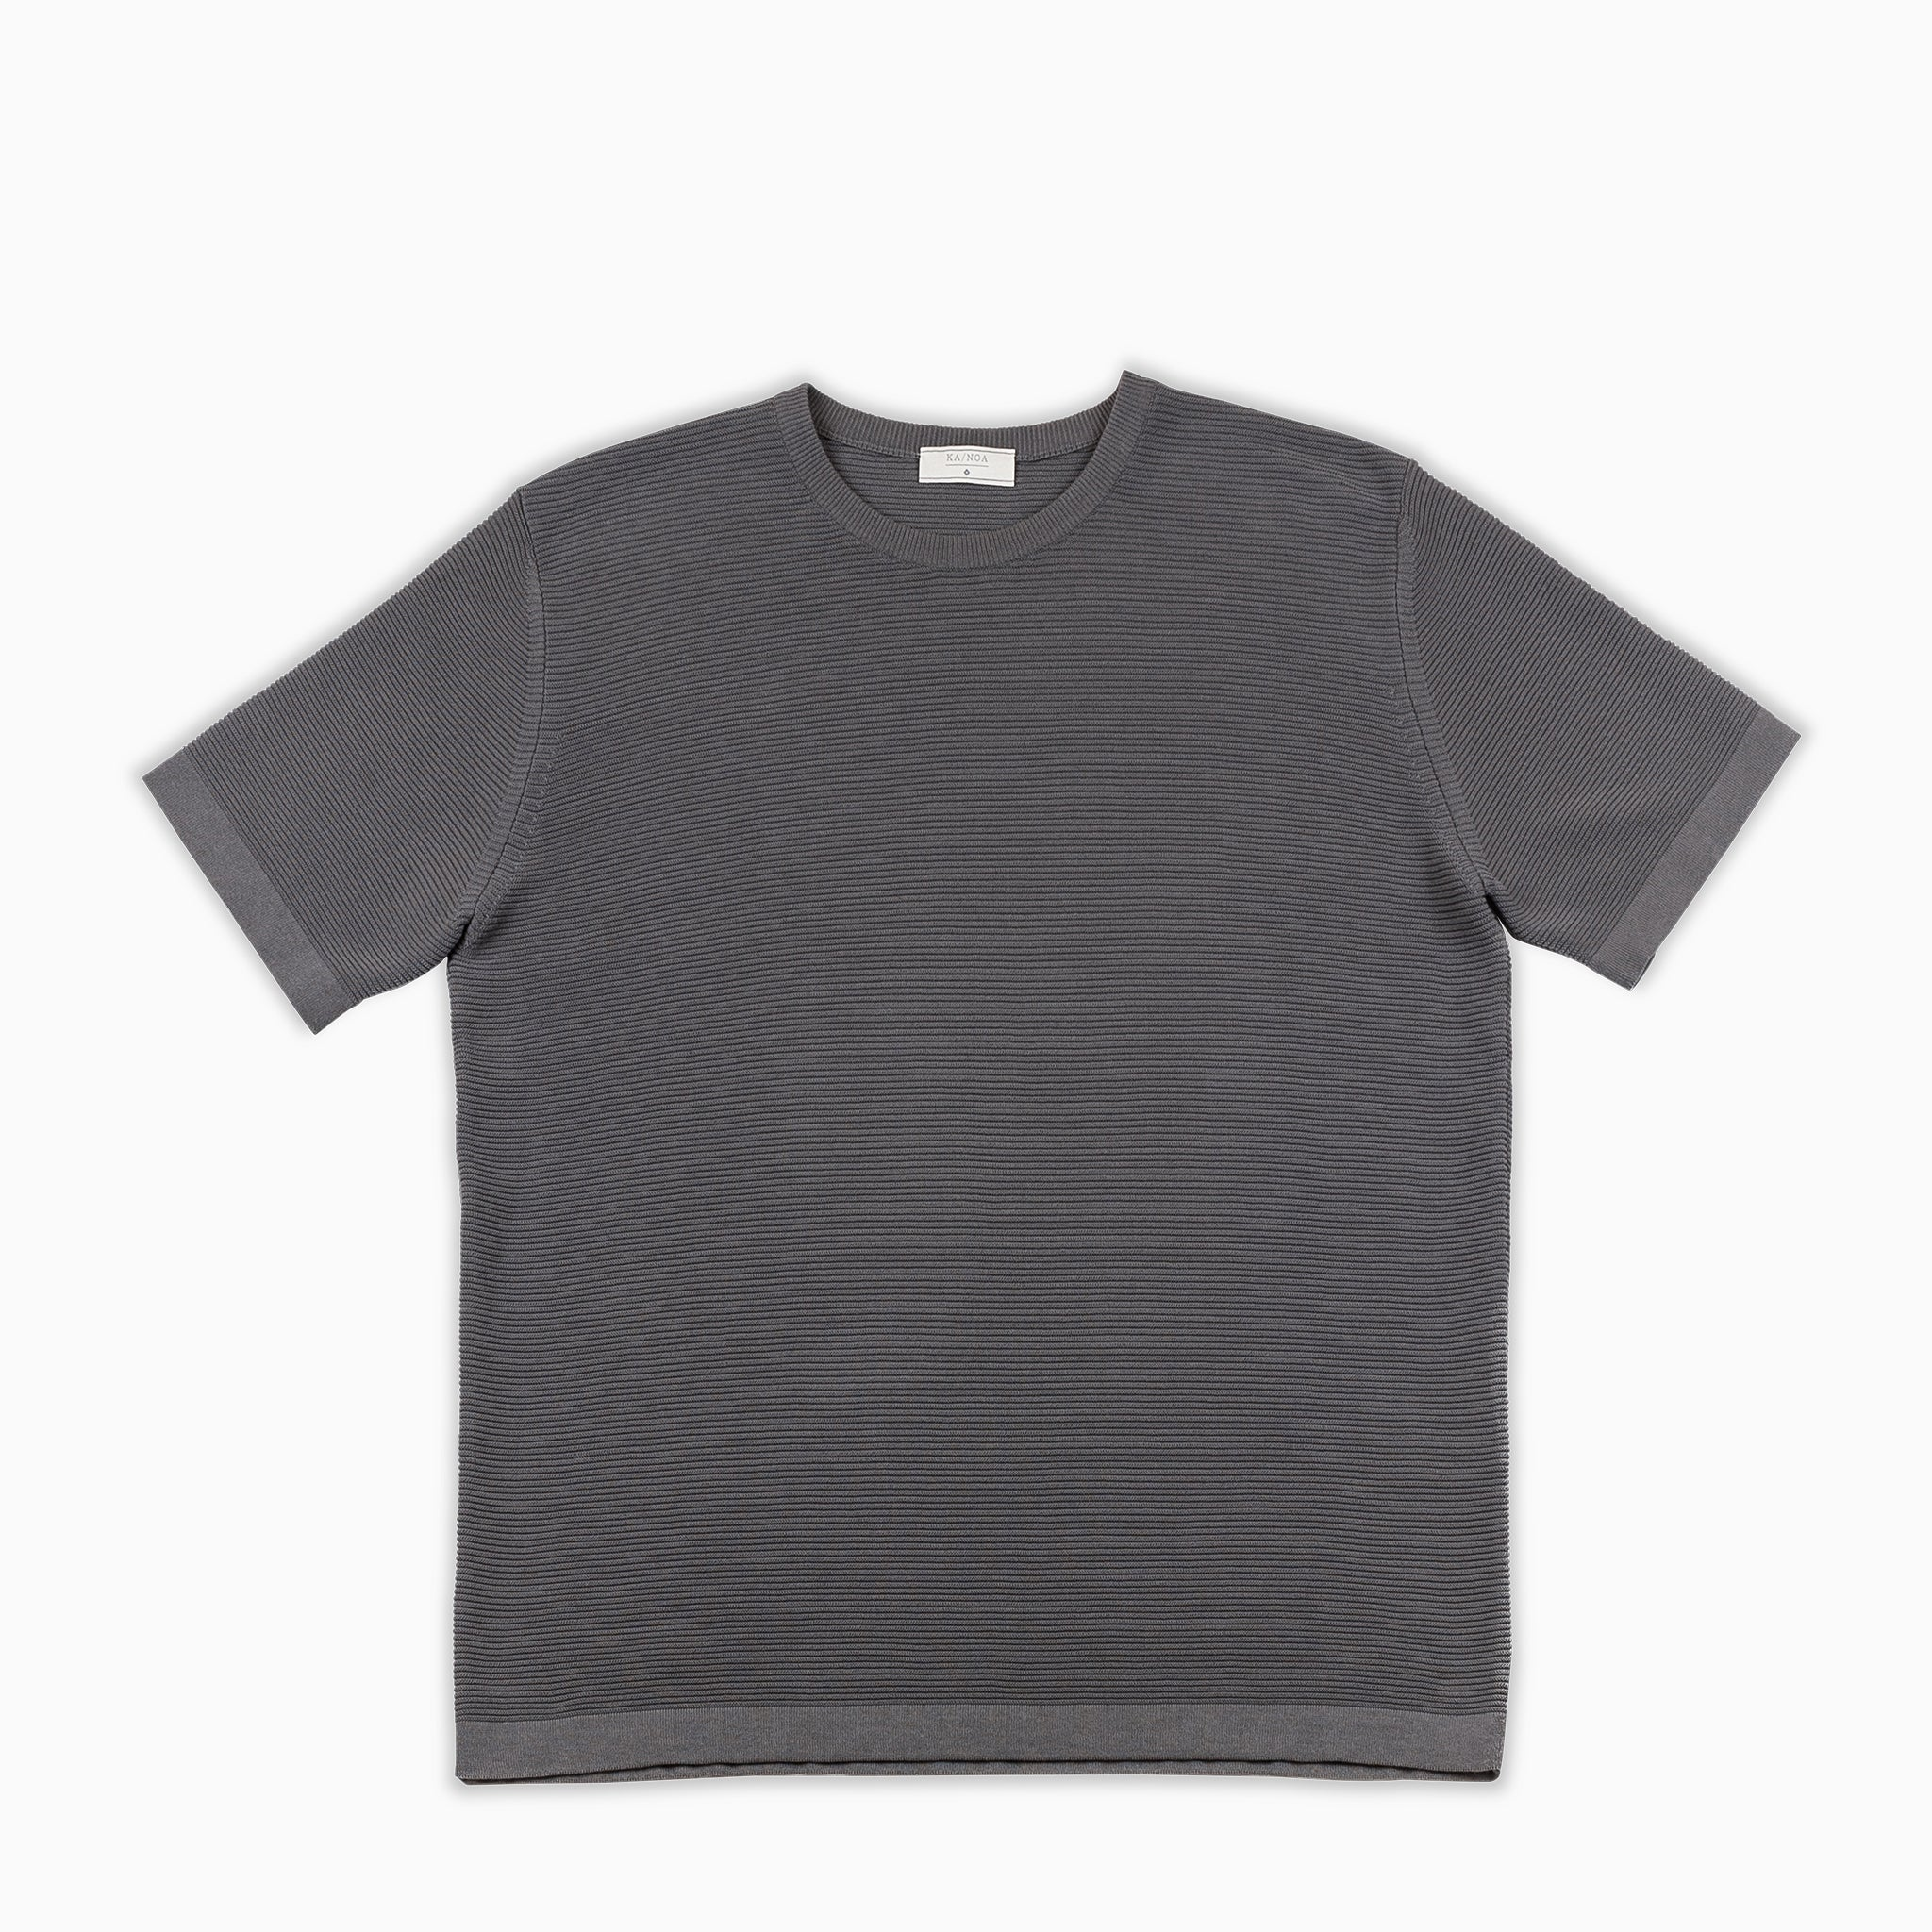 Malten T-Shirt Tricot Compact Cotton (mud grey)